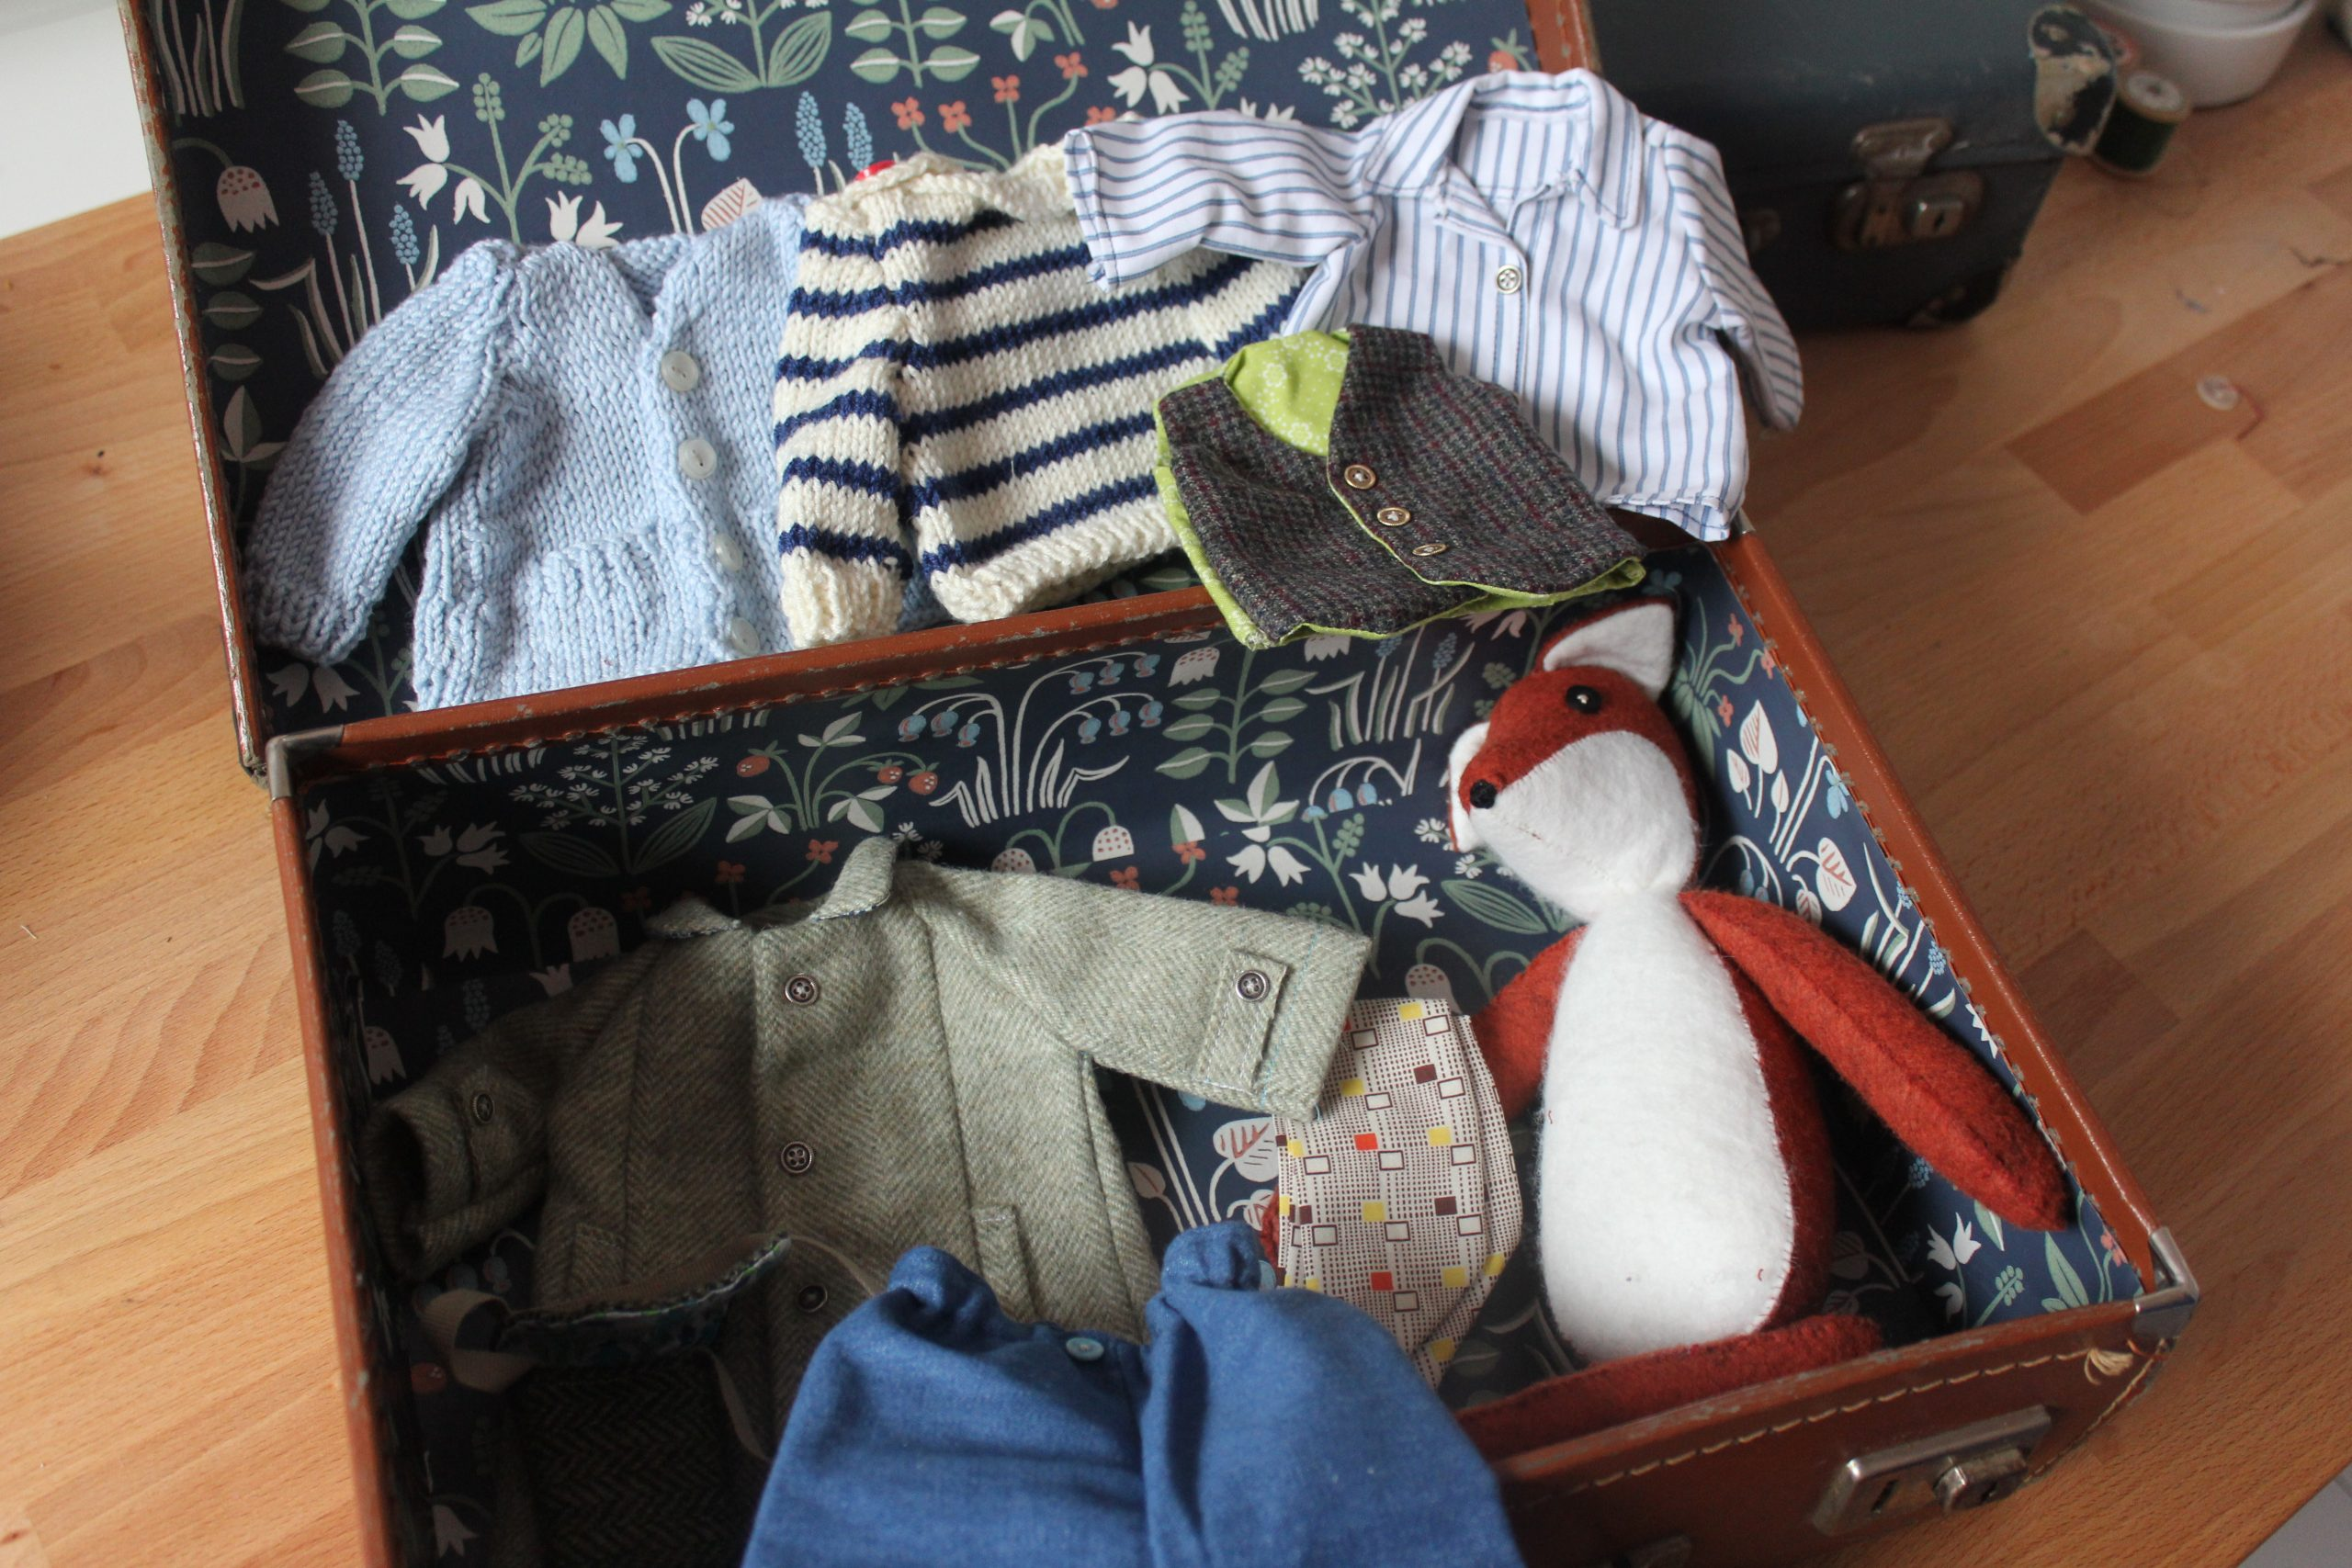 a handmade fox toy in an old suitcase filled with tiny clothes for him to wear